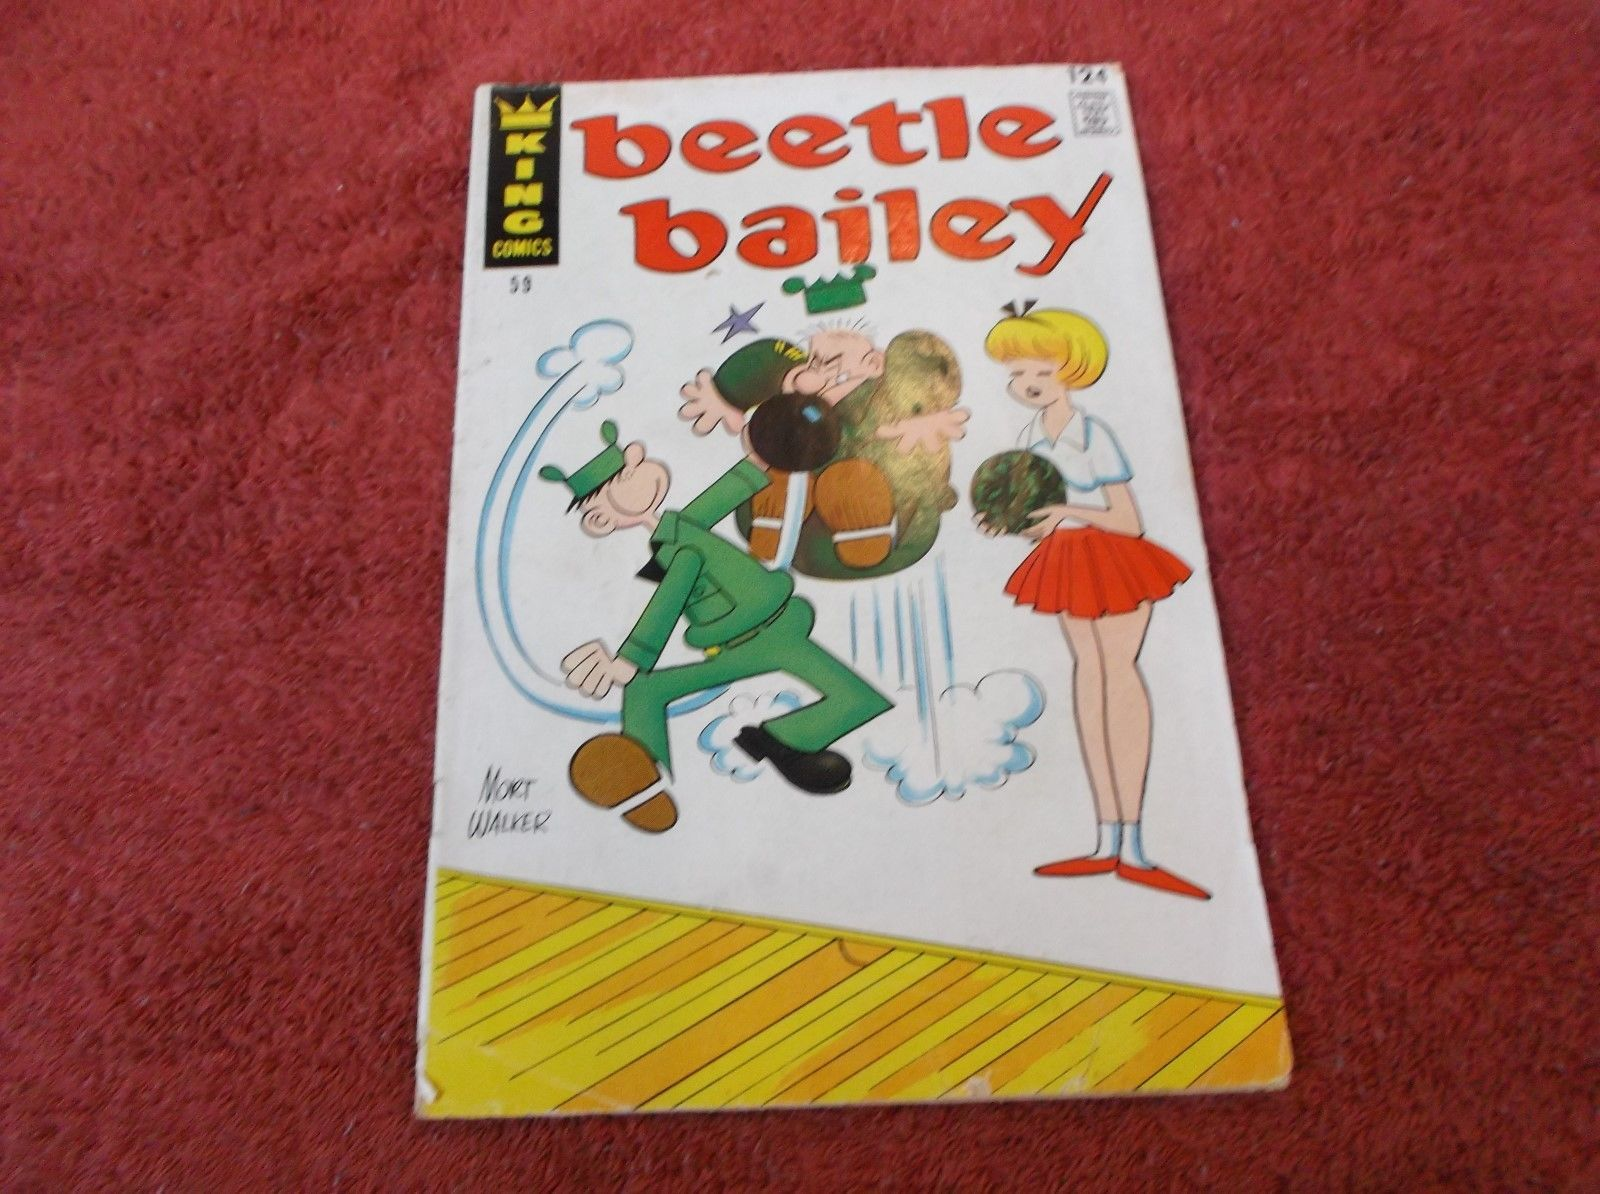 BEETLE BAILEY # 59 * July 1967 * GD * Mort Walker Story & Artwork!